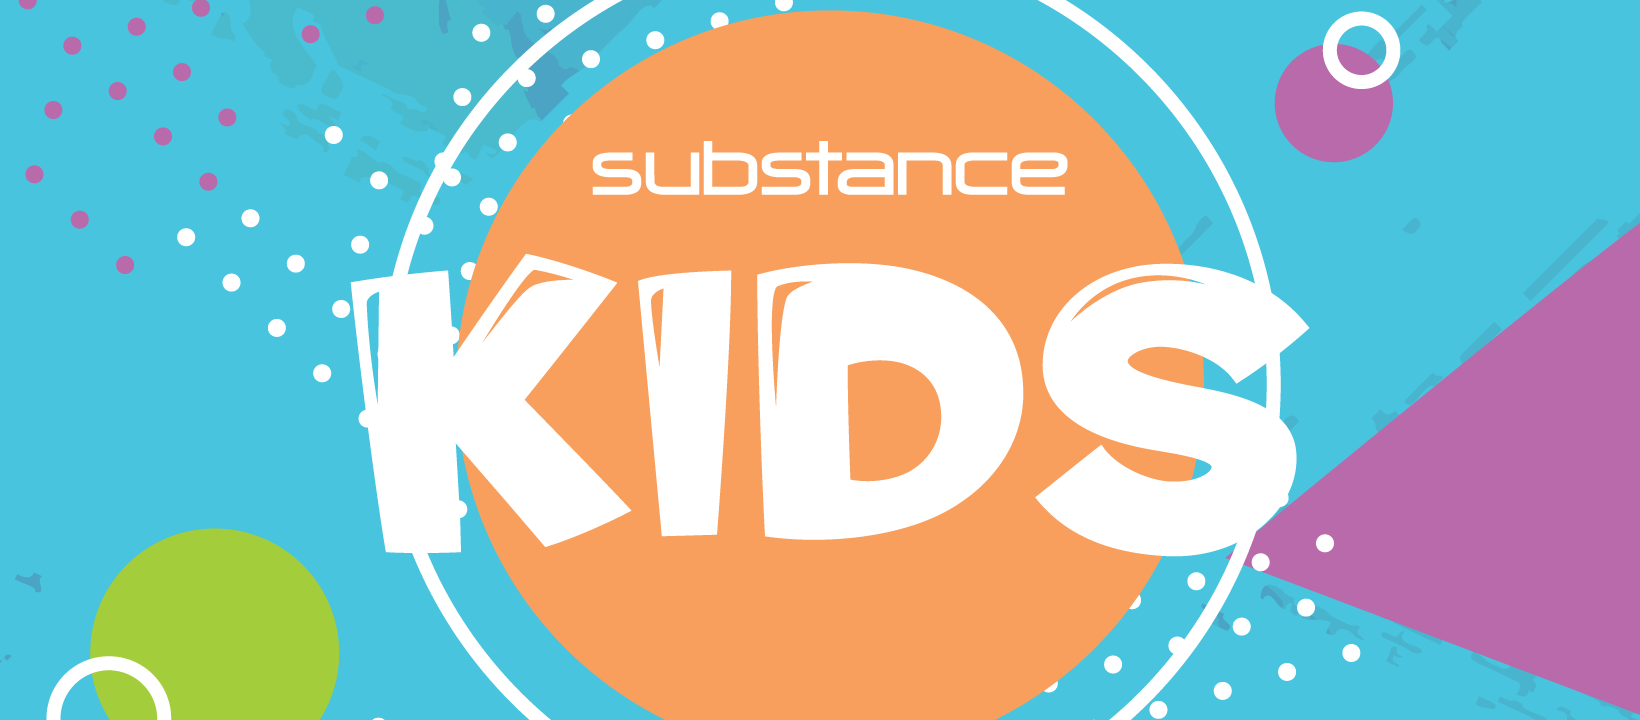 substance_kids_fb_header